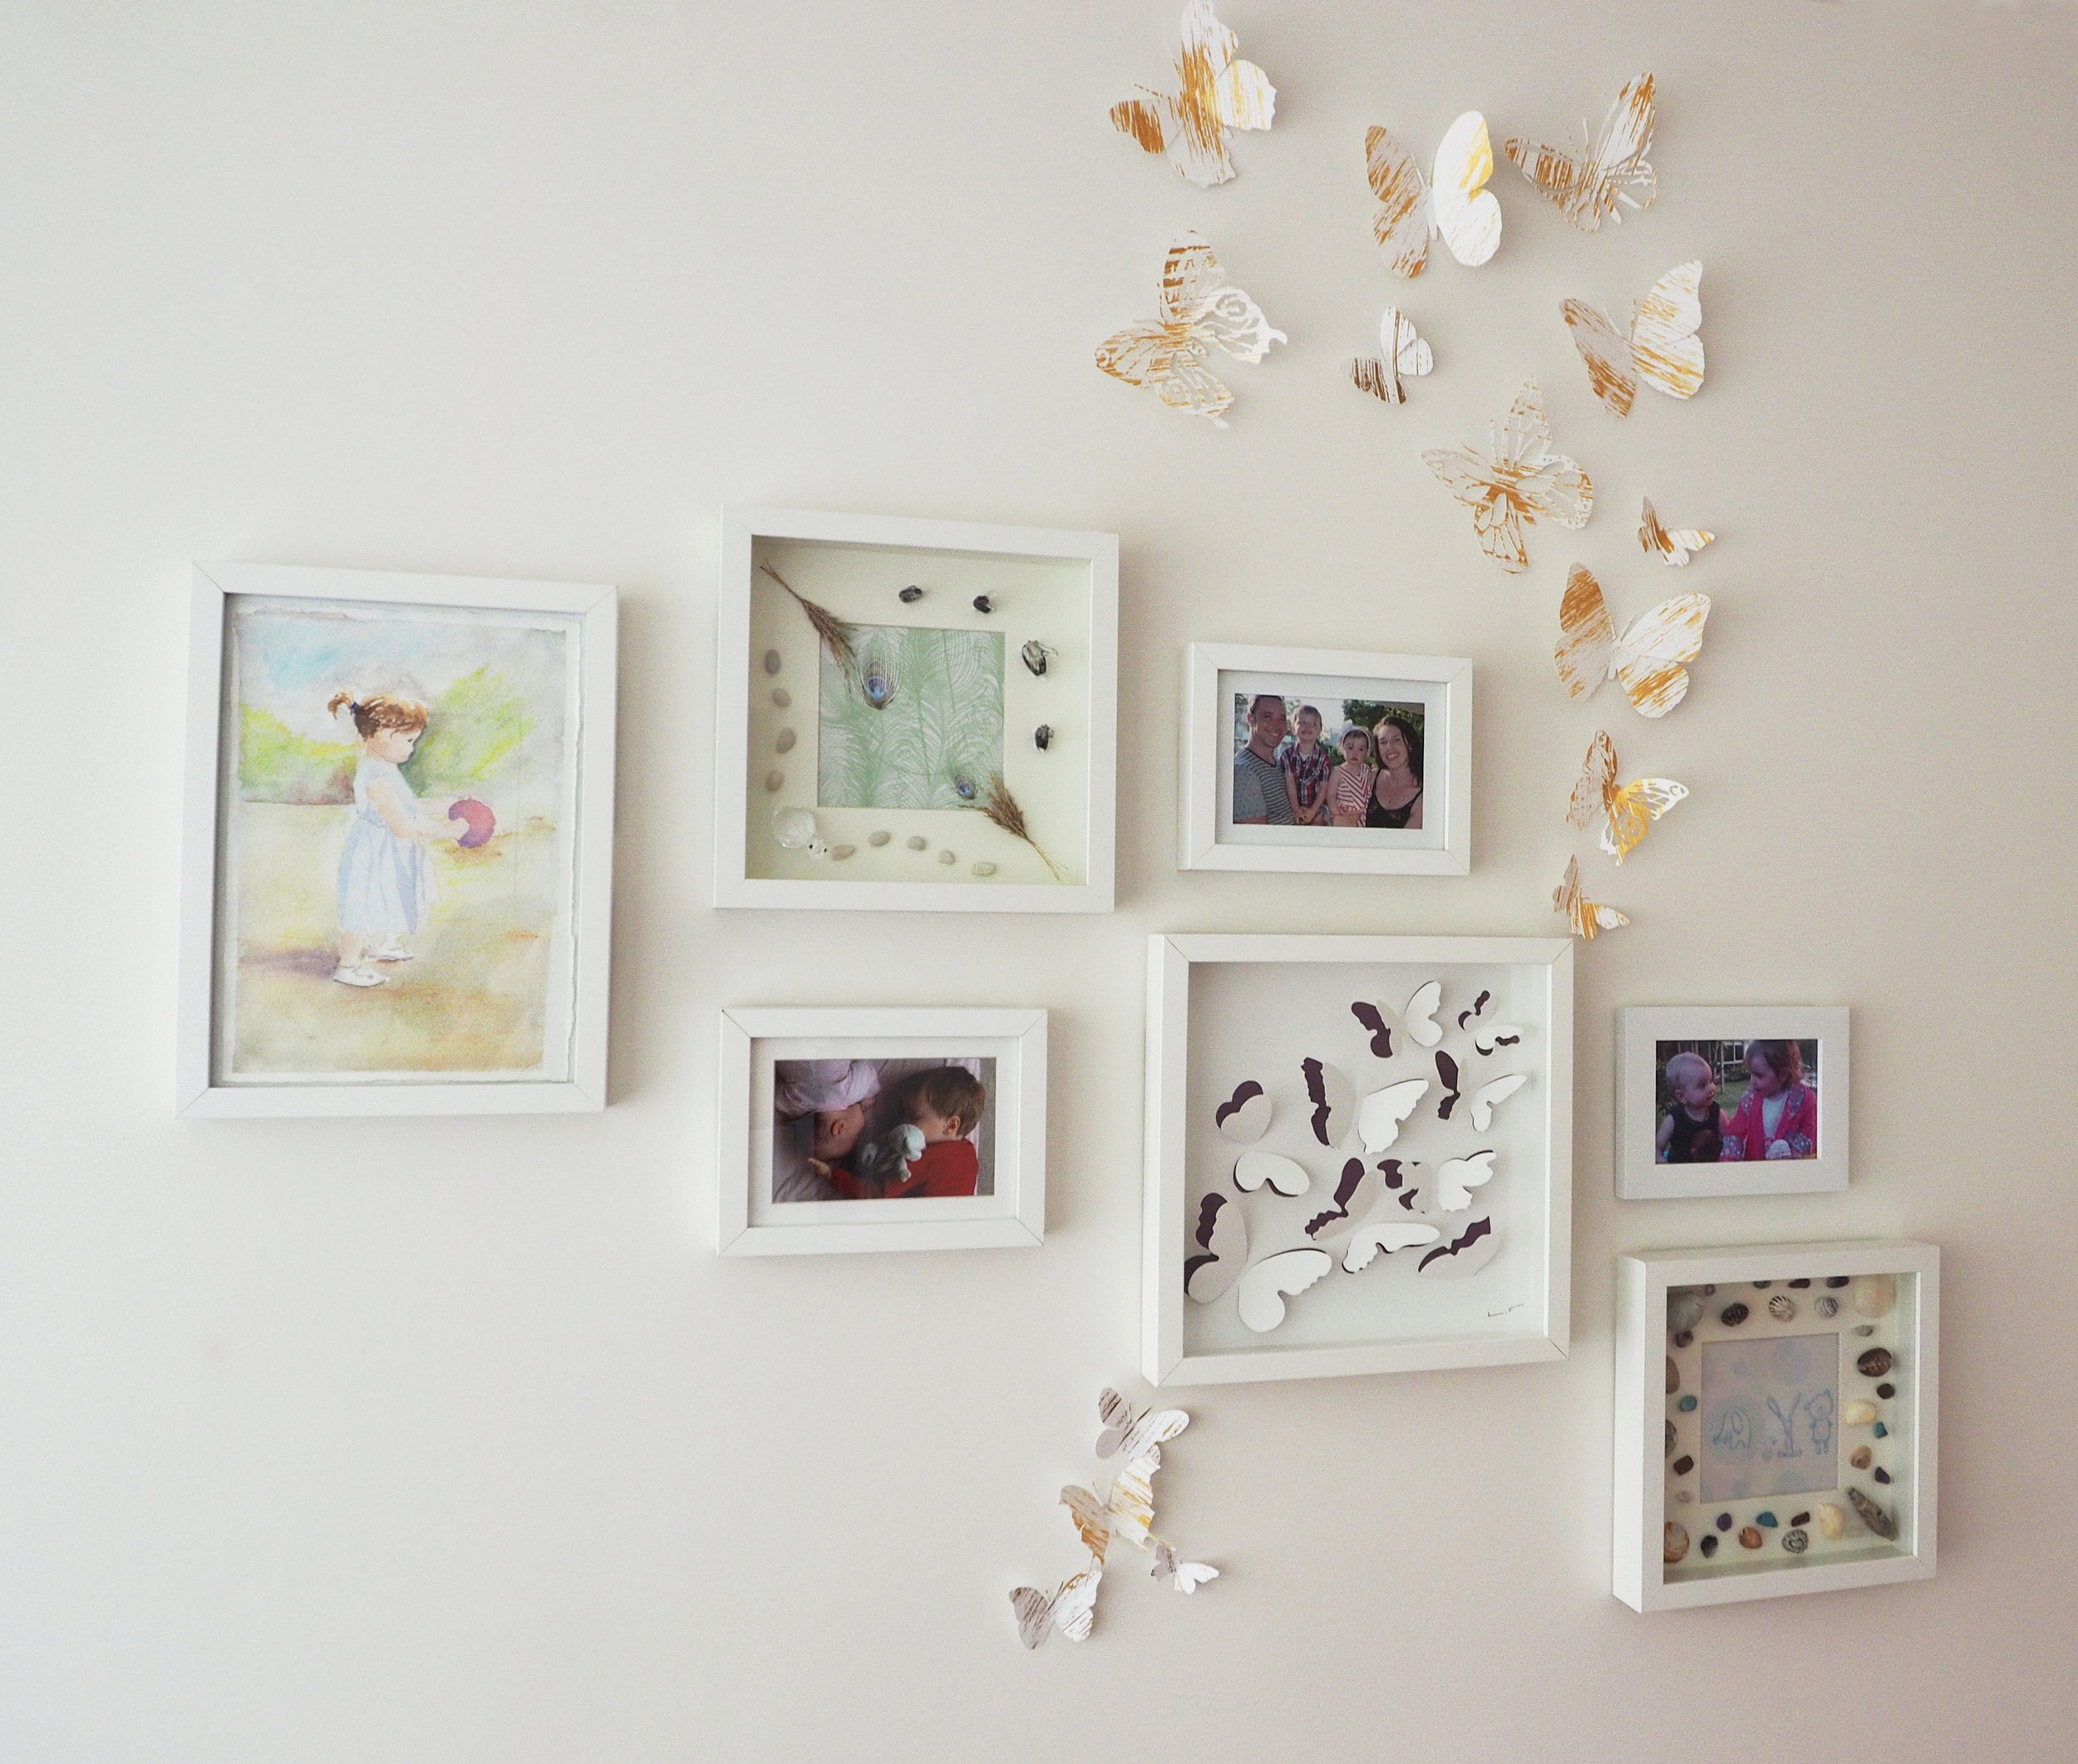 Photo gallery wall for a child's bedroom - paintings, pictures and photos to add a personal touch to a child's bedroom